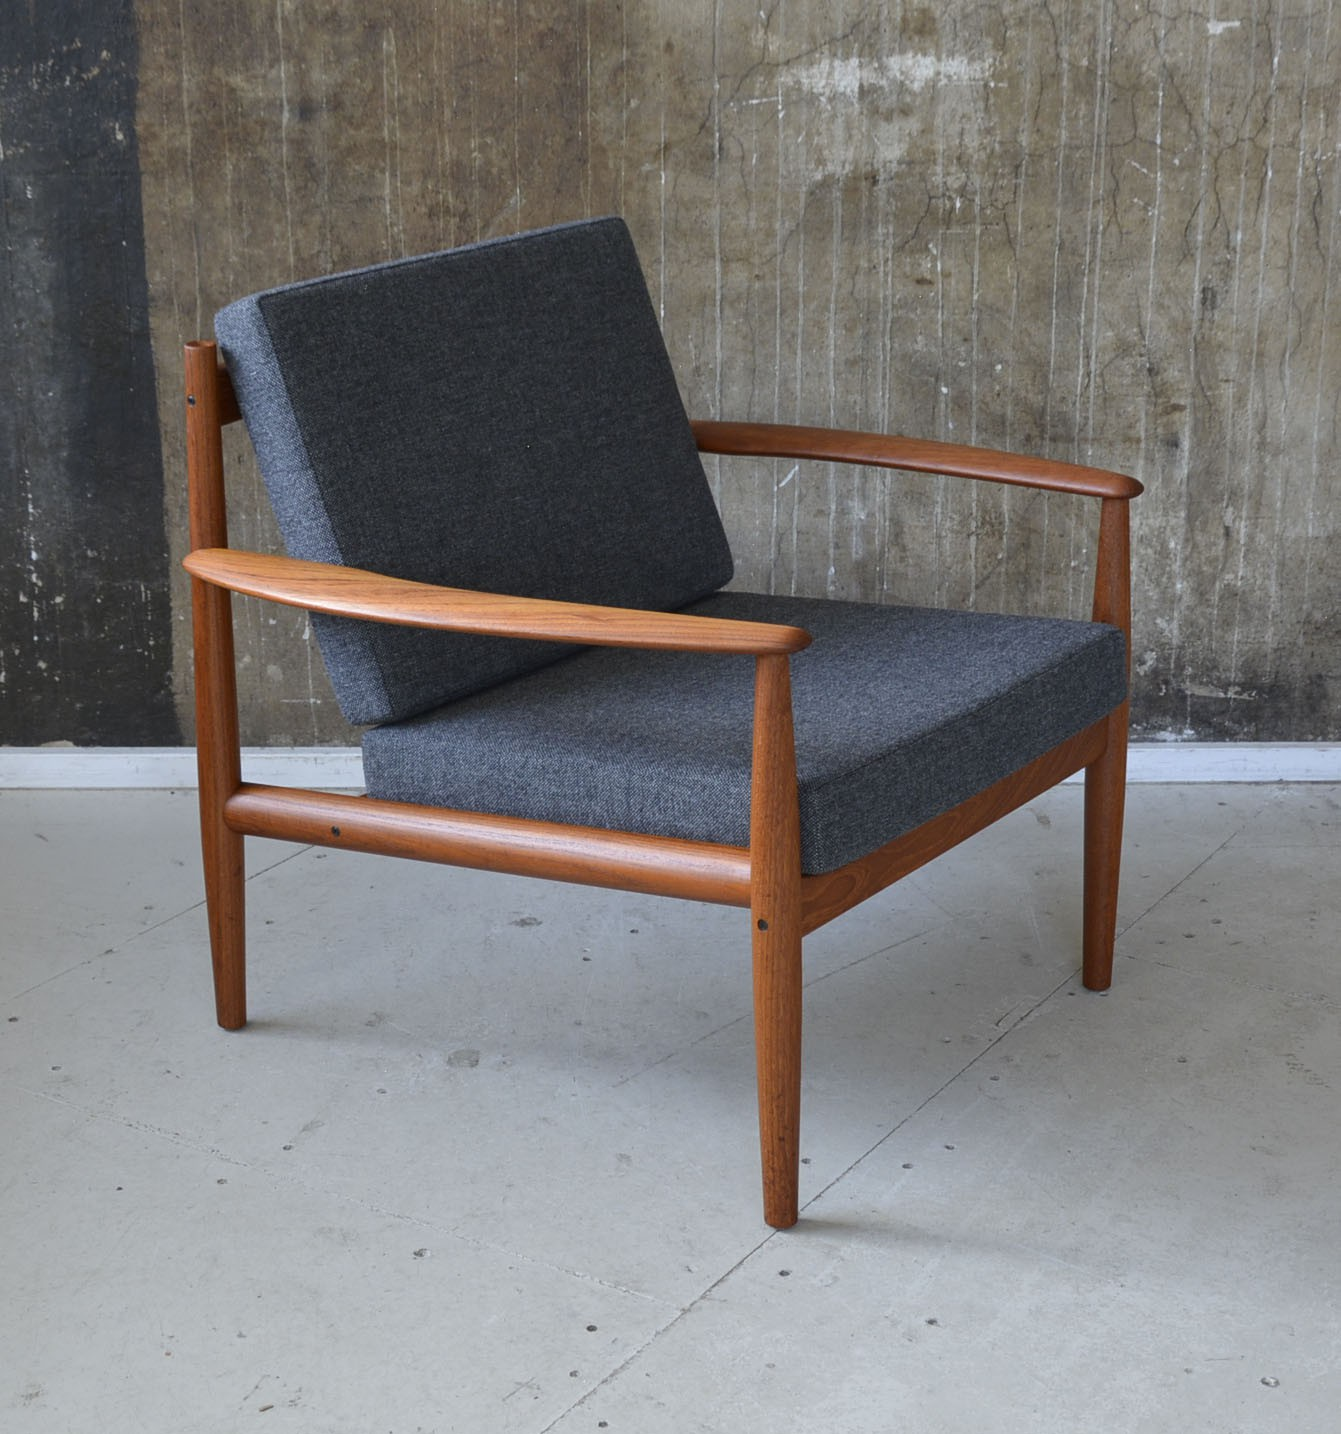 France & Son Mid-century Armchair In Teak And Fabric